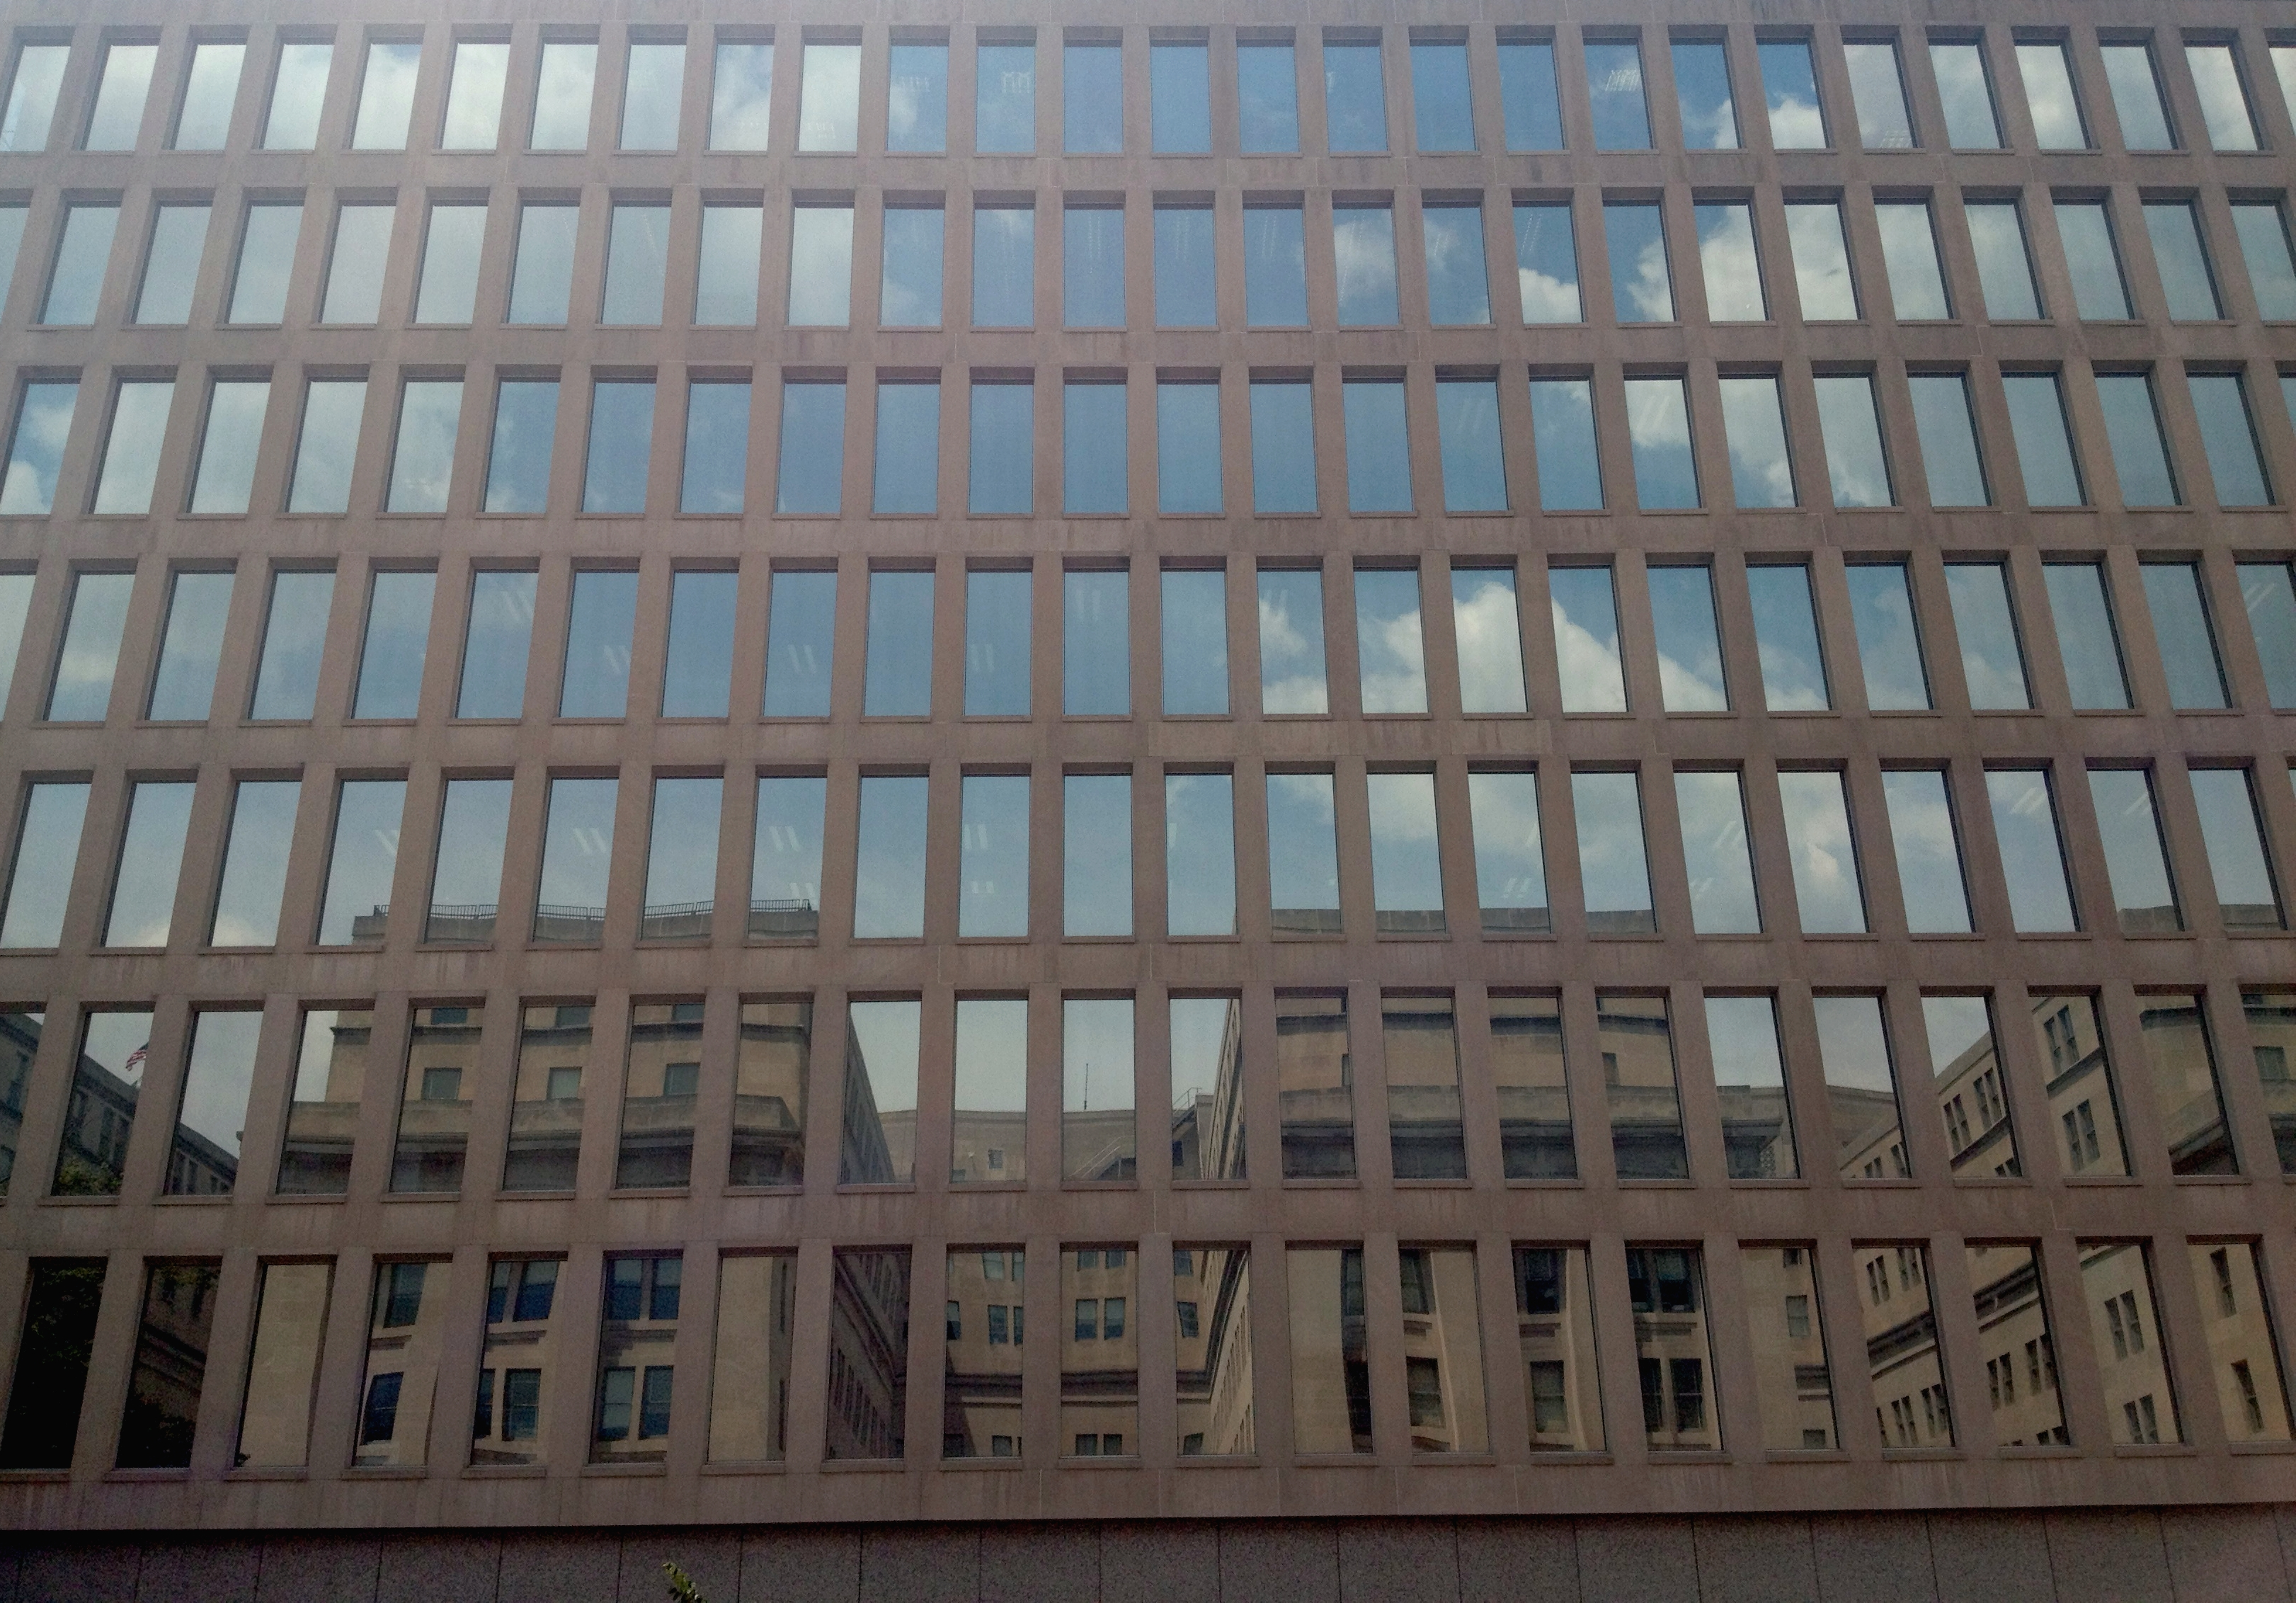 Reflection of the Stewart Lee Udall Department of Interior building in the windows of the Roosevelt building.